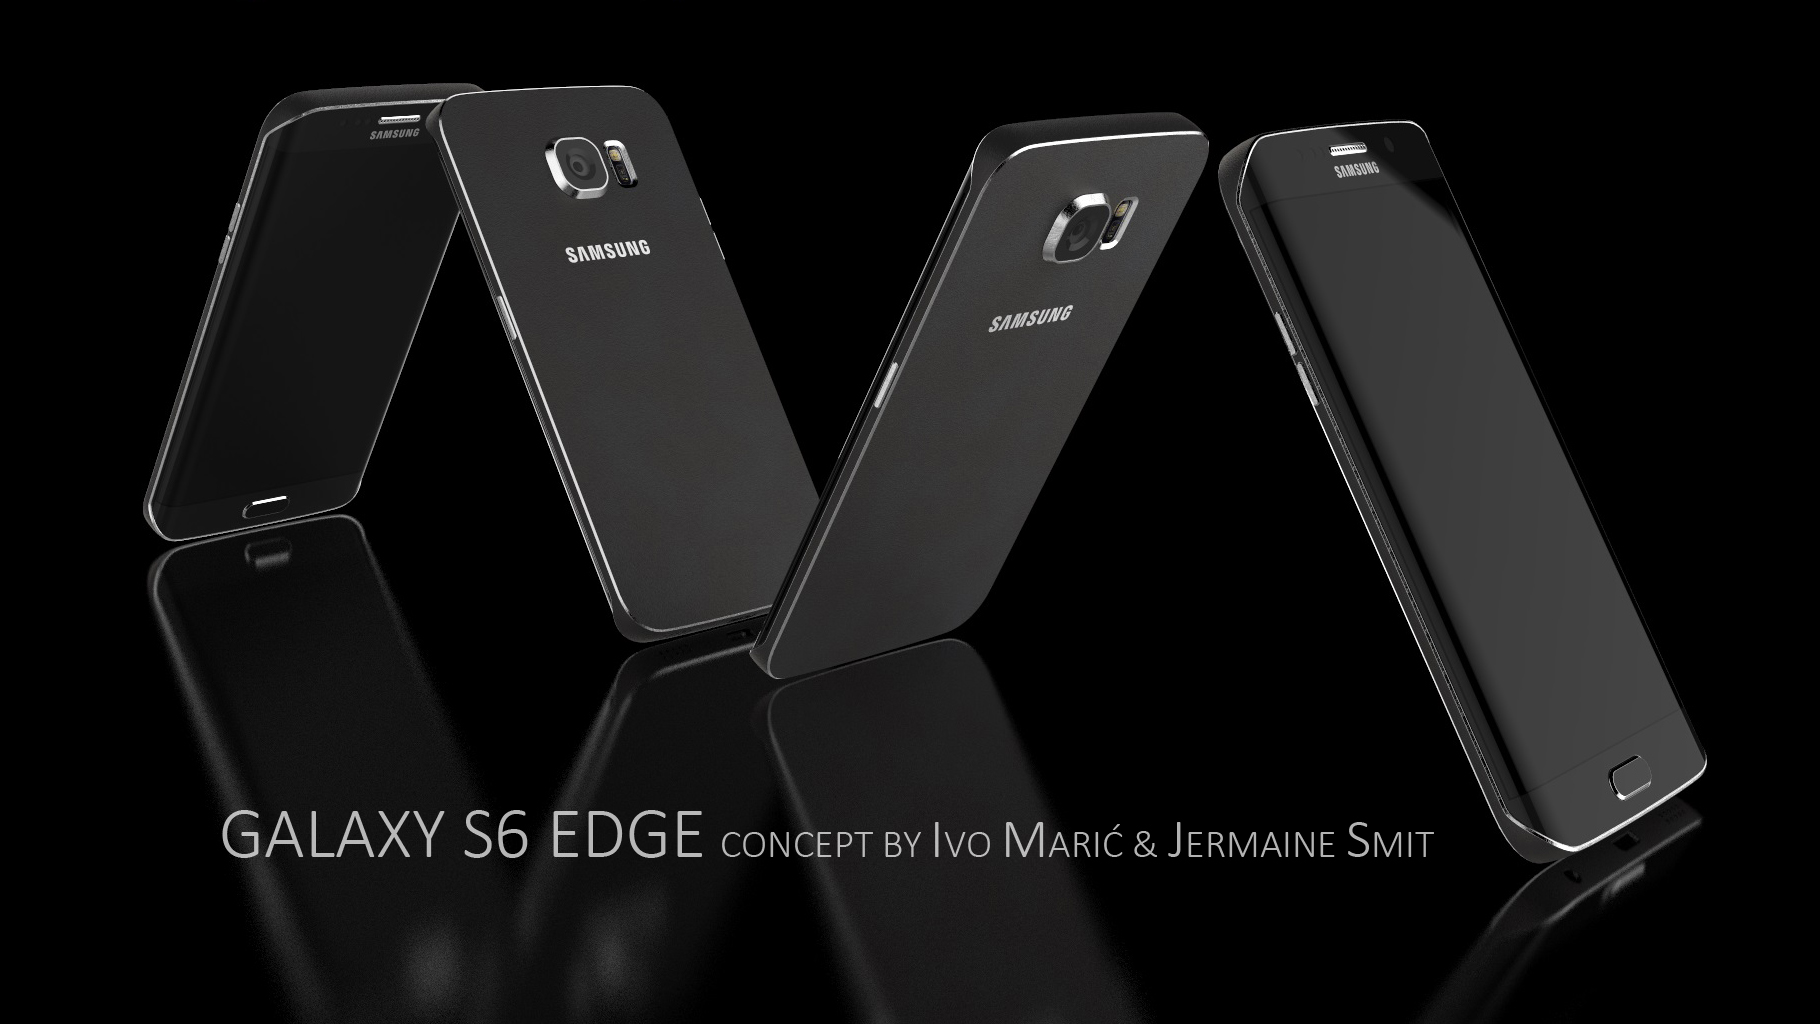 Galaxy-S6-and-S6-Edge-3D-design-renders